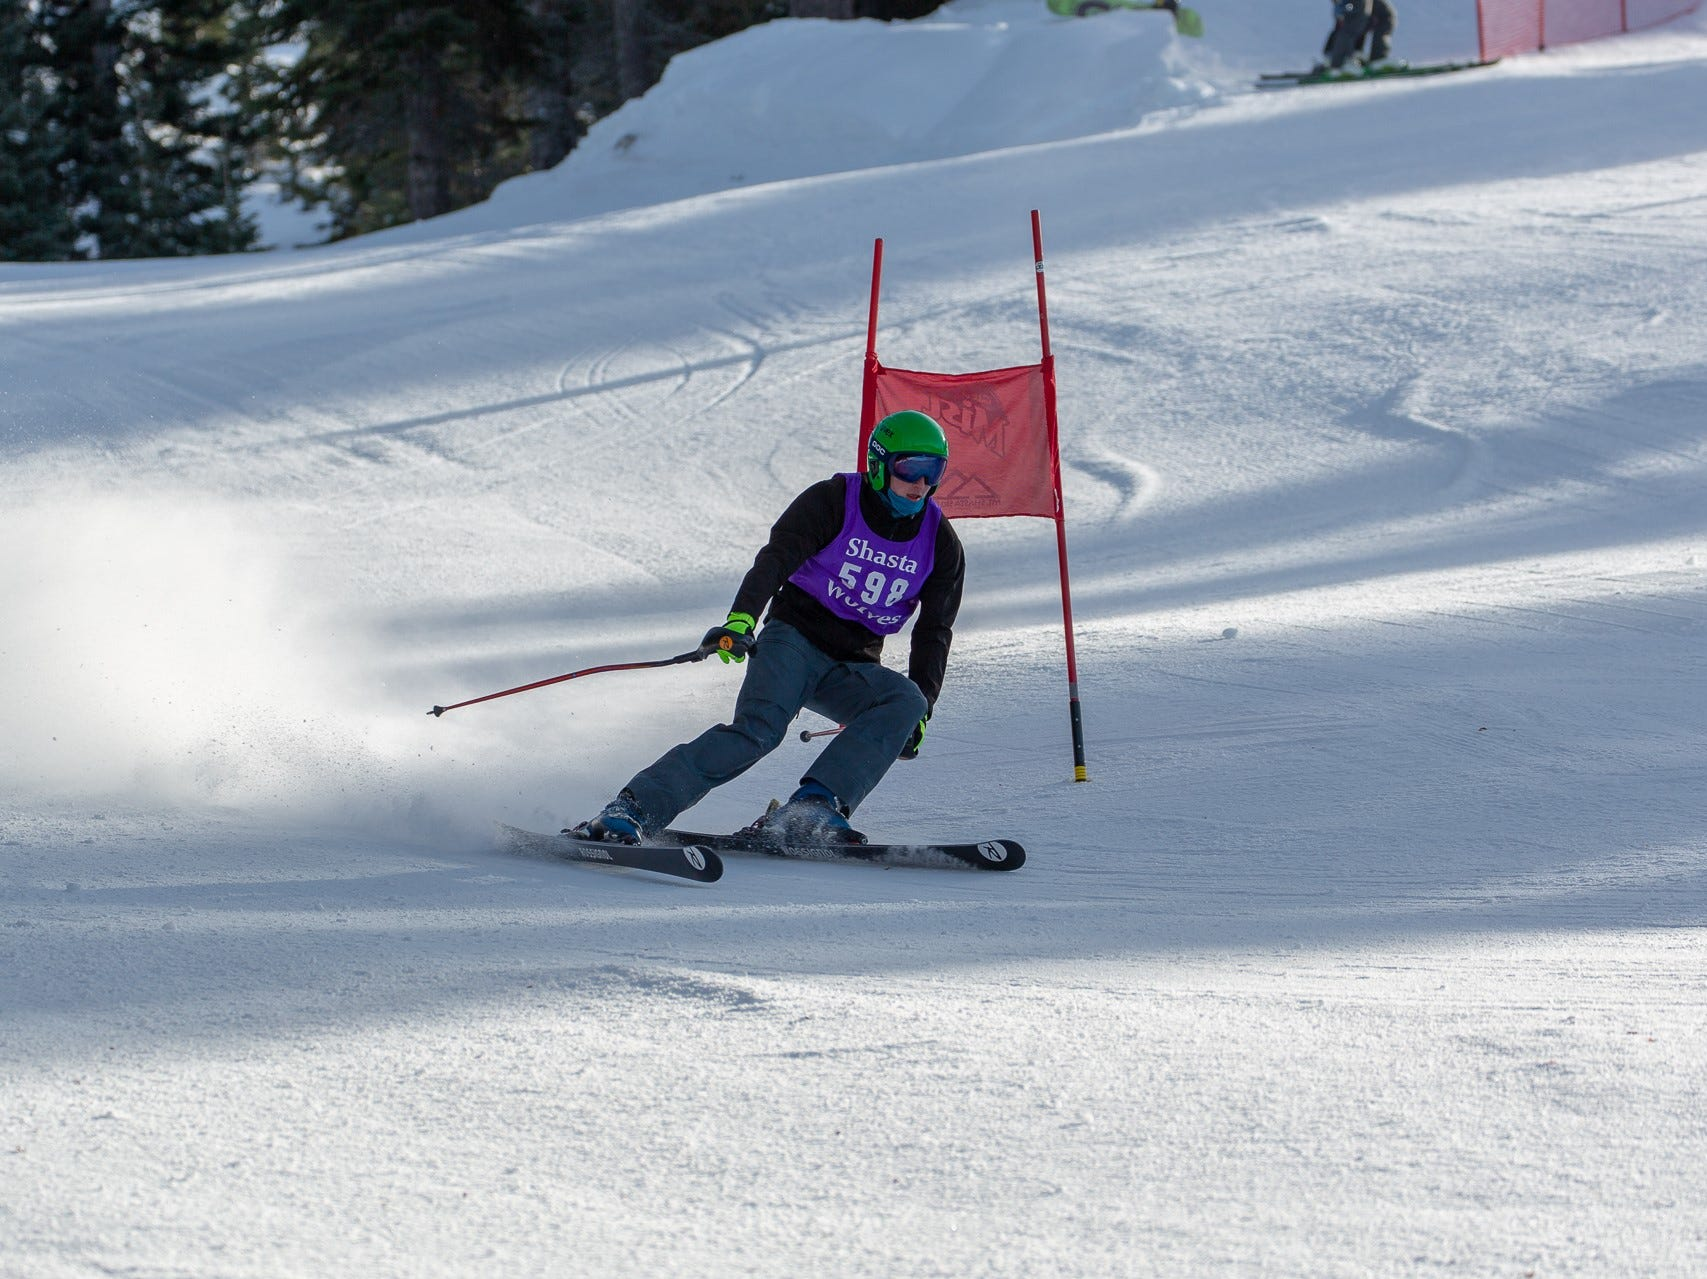 Nick Lindsay of Shasta competes in the first high school ski meet of 2019 on Monday, Jan. 14 at Mt. Shasta Ski Park.